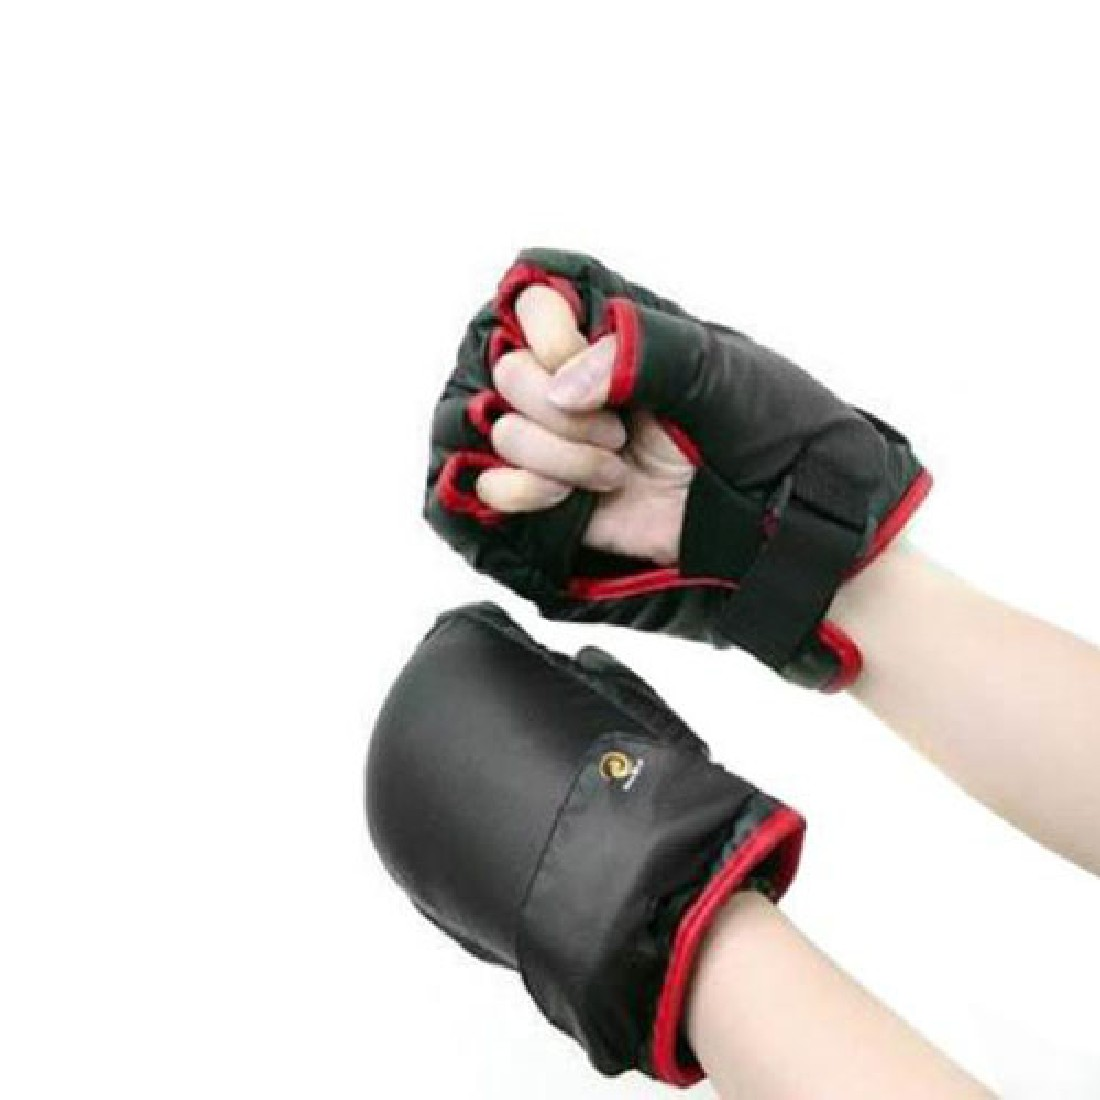 Hot Sale Brand New Boxing Glove for Nintendo Wii Fit Nunchuck Sport Game Remote Controller(China (Mainland))